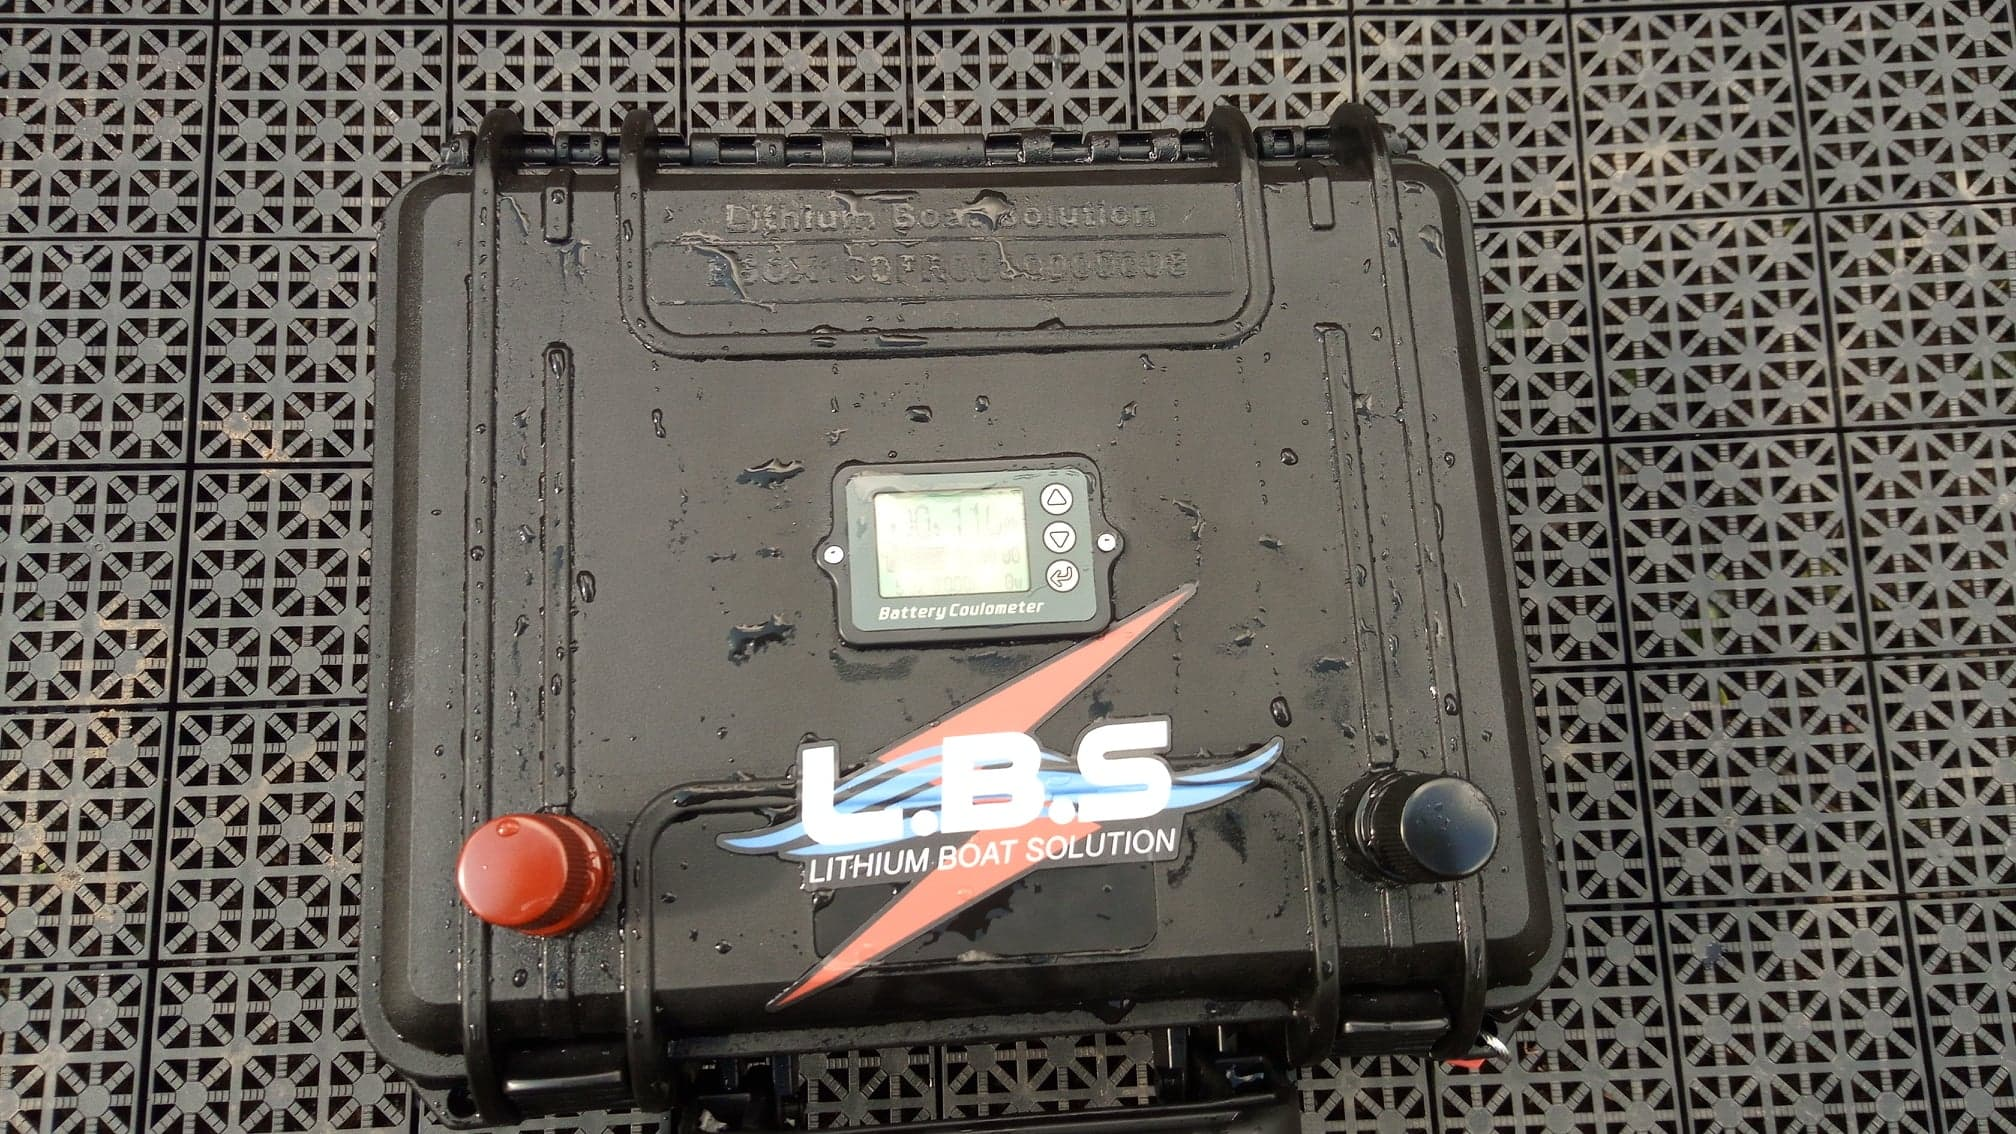 Batterie Lithium Boat Solution ( LBS ) 67116253_485507018892009_1457276171535253504_n